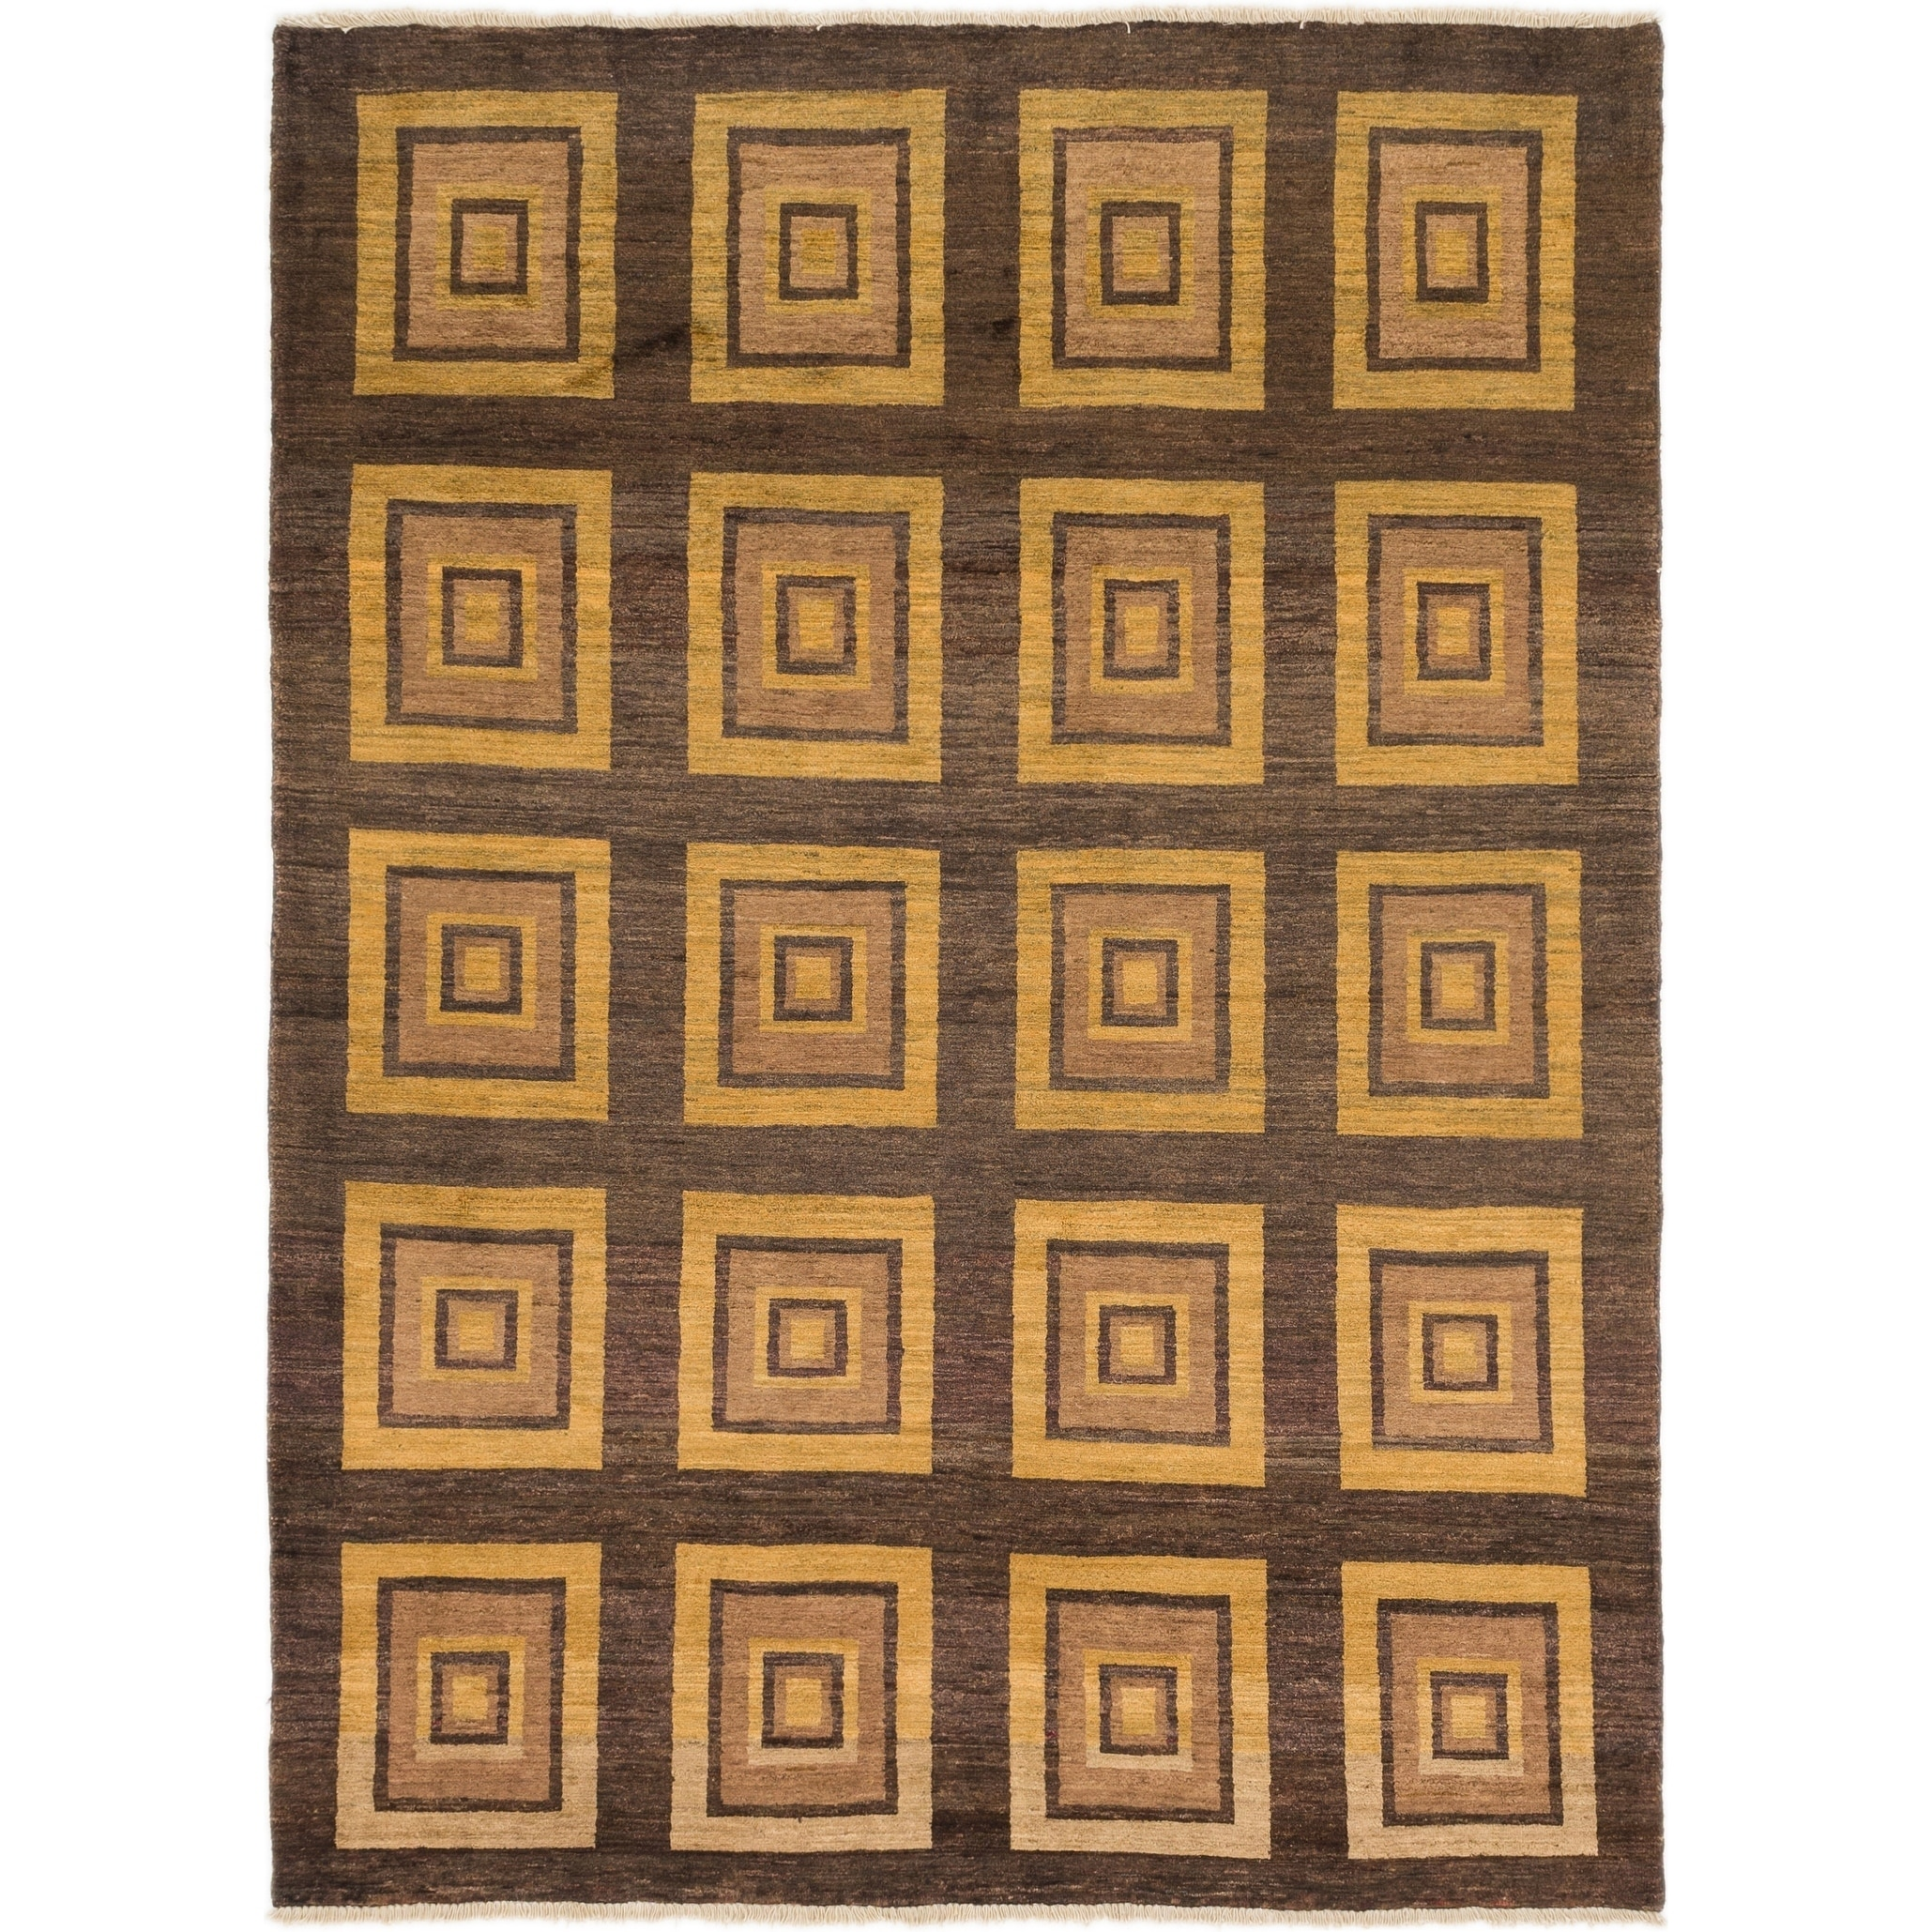 Hand Knotted Kashkuli Gabbeh Wool Area Rug - 6 x 8 2 (Brown - 6 x 8 2)